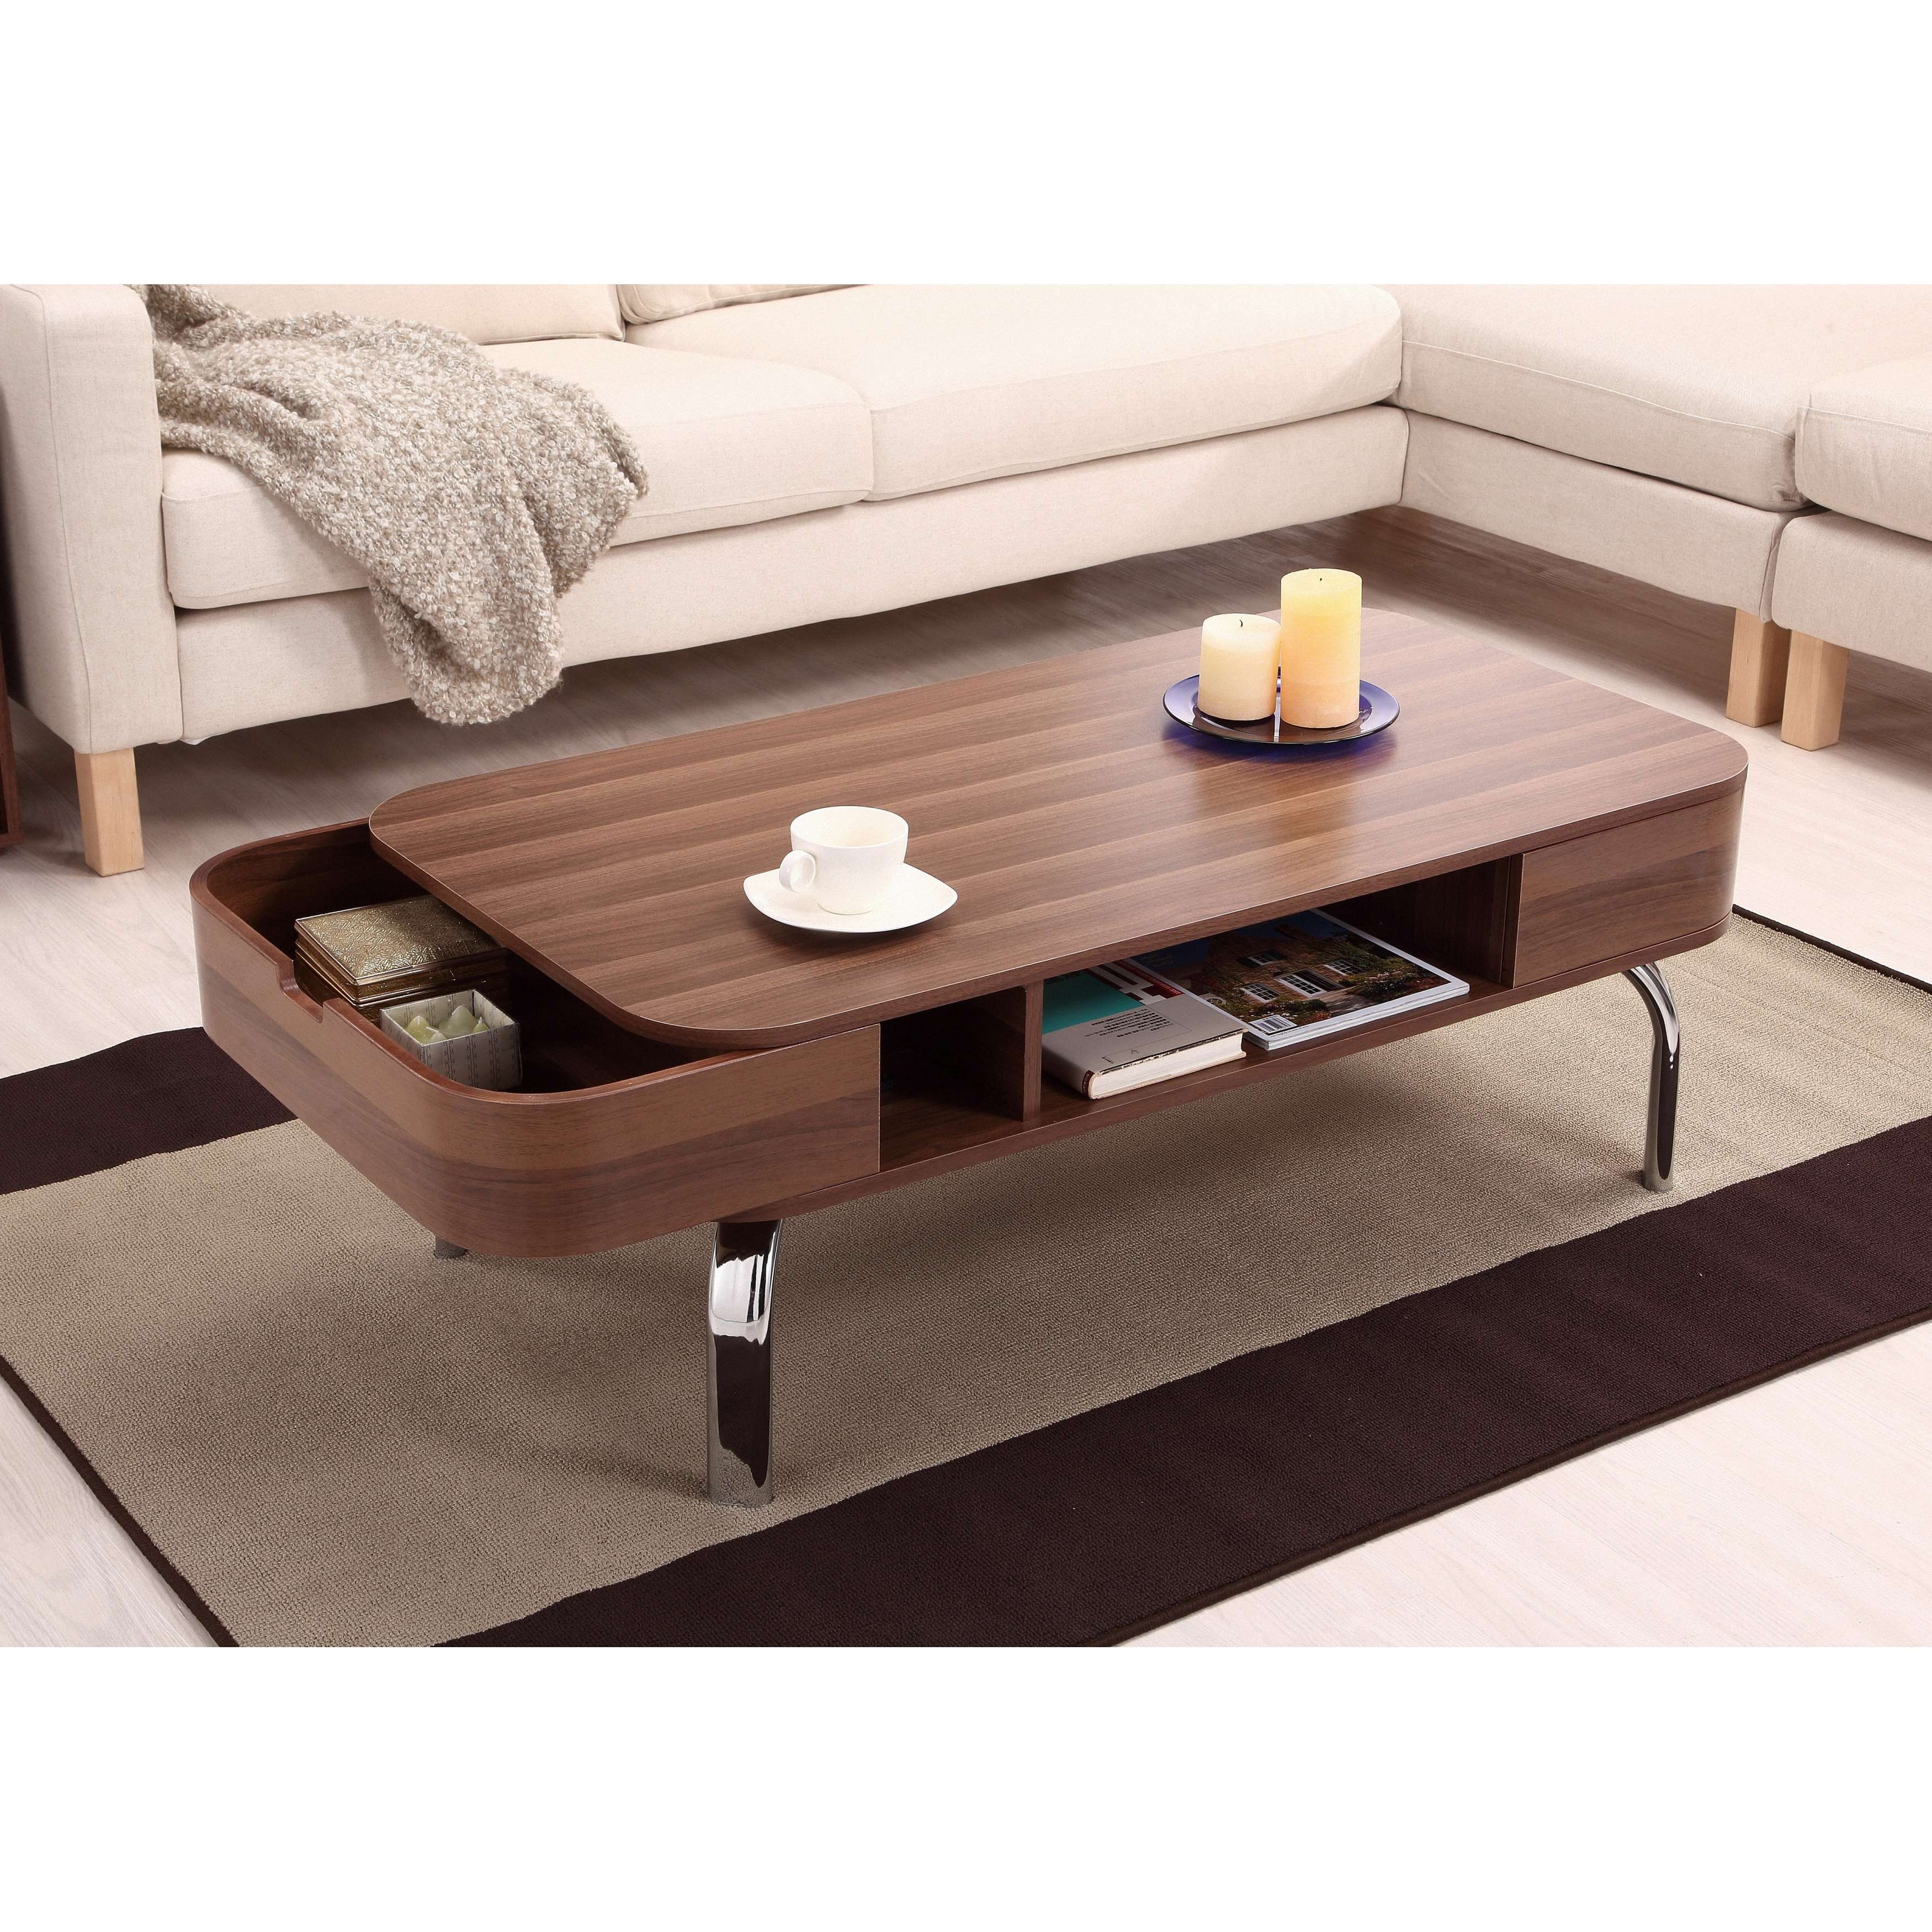 Coffee Table : Inch Square Coffee Table Huge Coffee Table Large With Regard To 2017 Huge Coffee Tables (View 1 of 20)